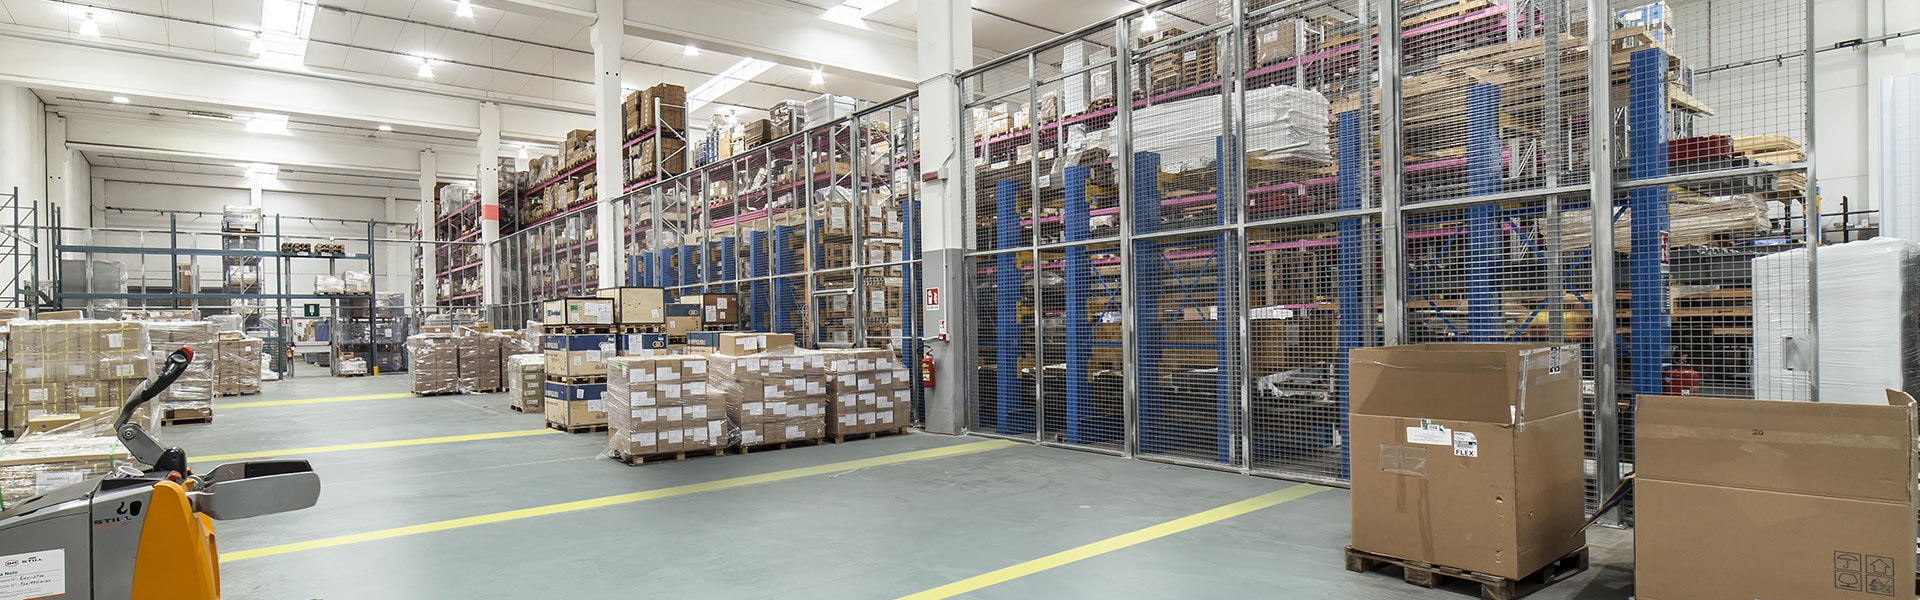 Logistica per e-commerce Bologna